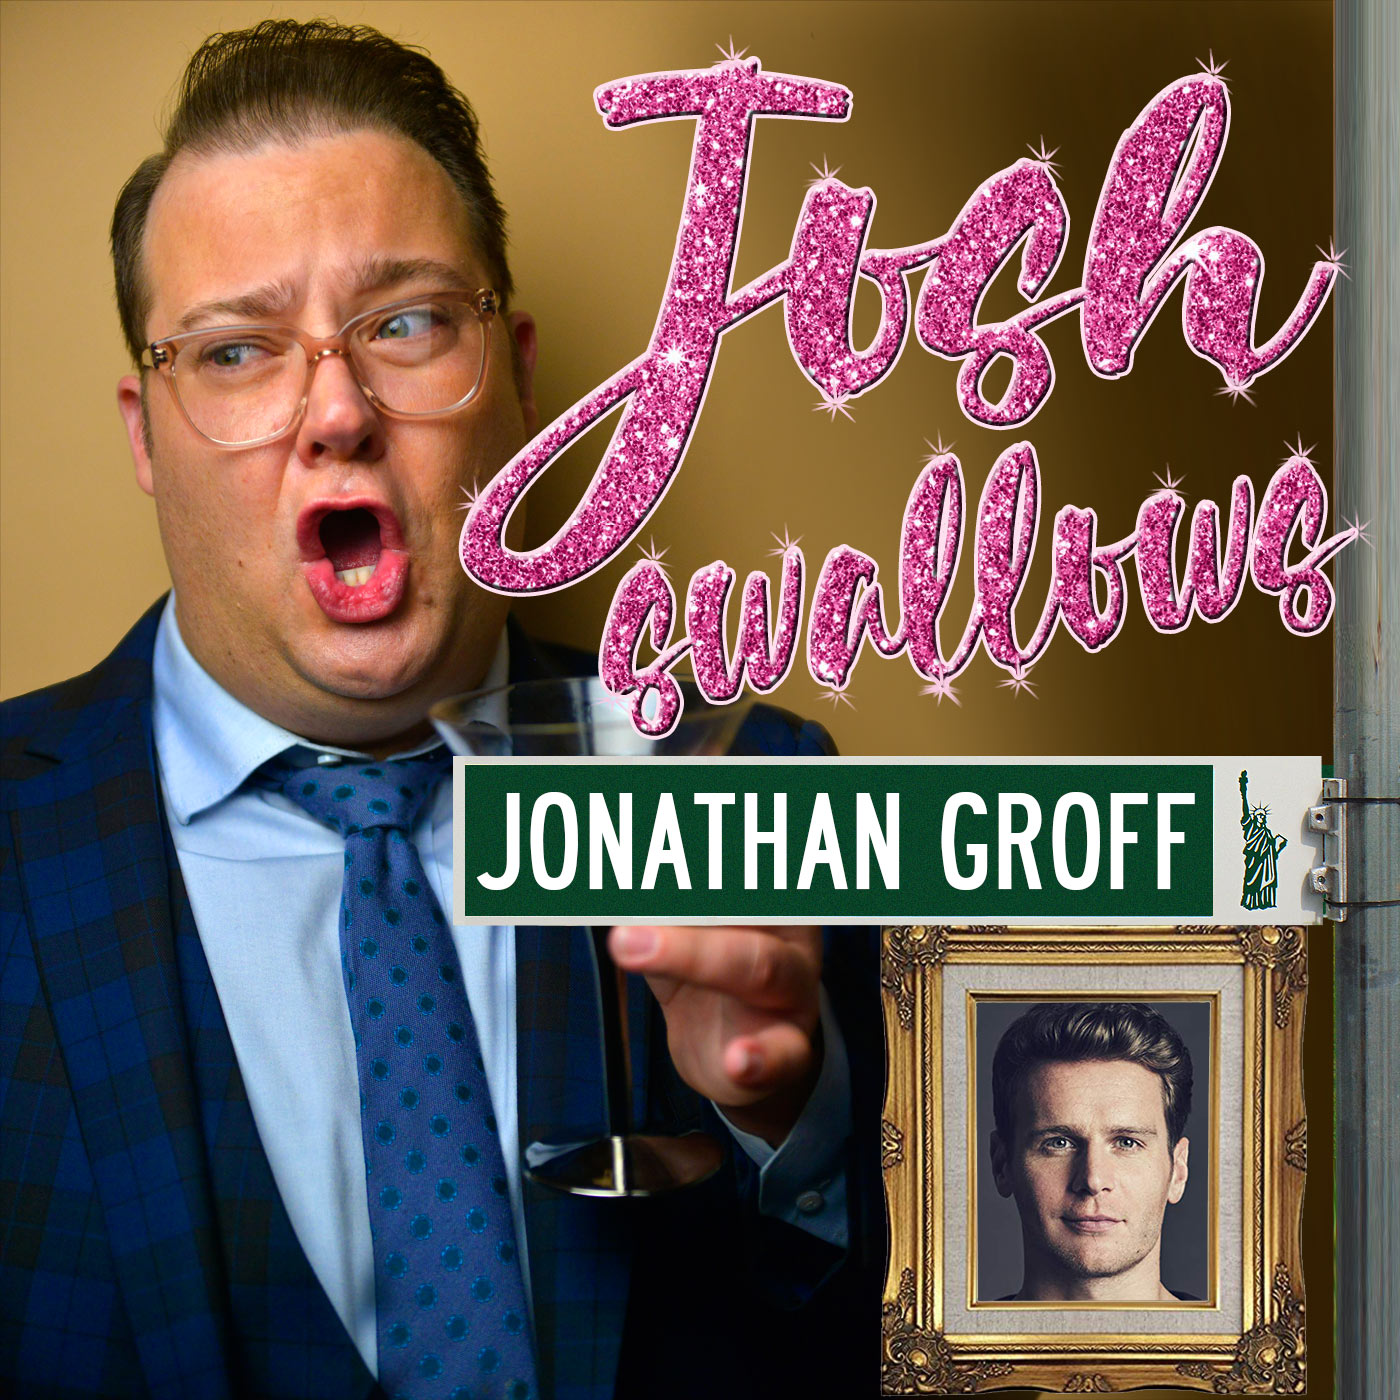 Josh Swallows Broadway Episode 15 Jonathan Groff